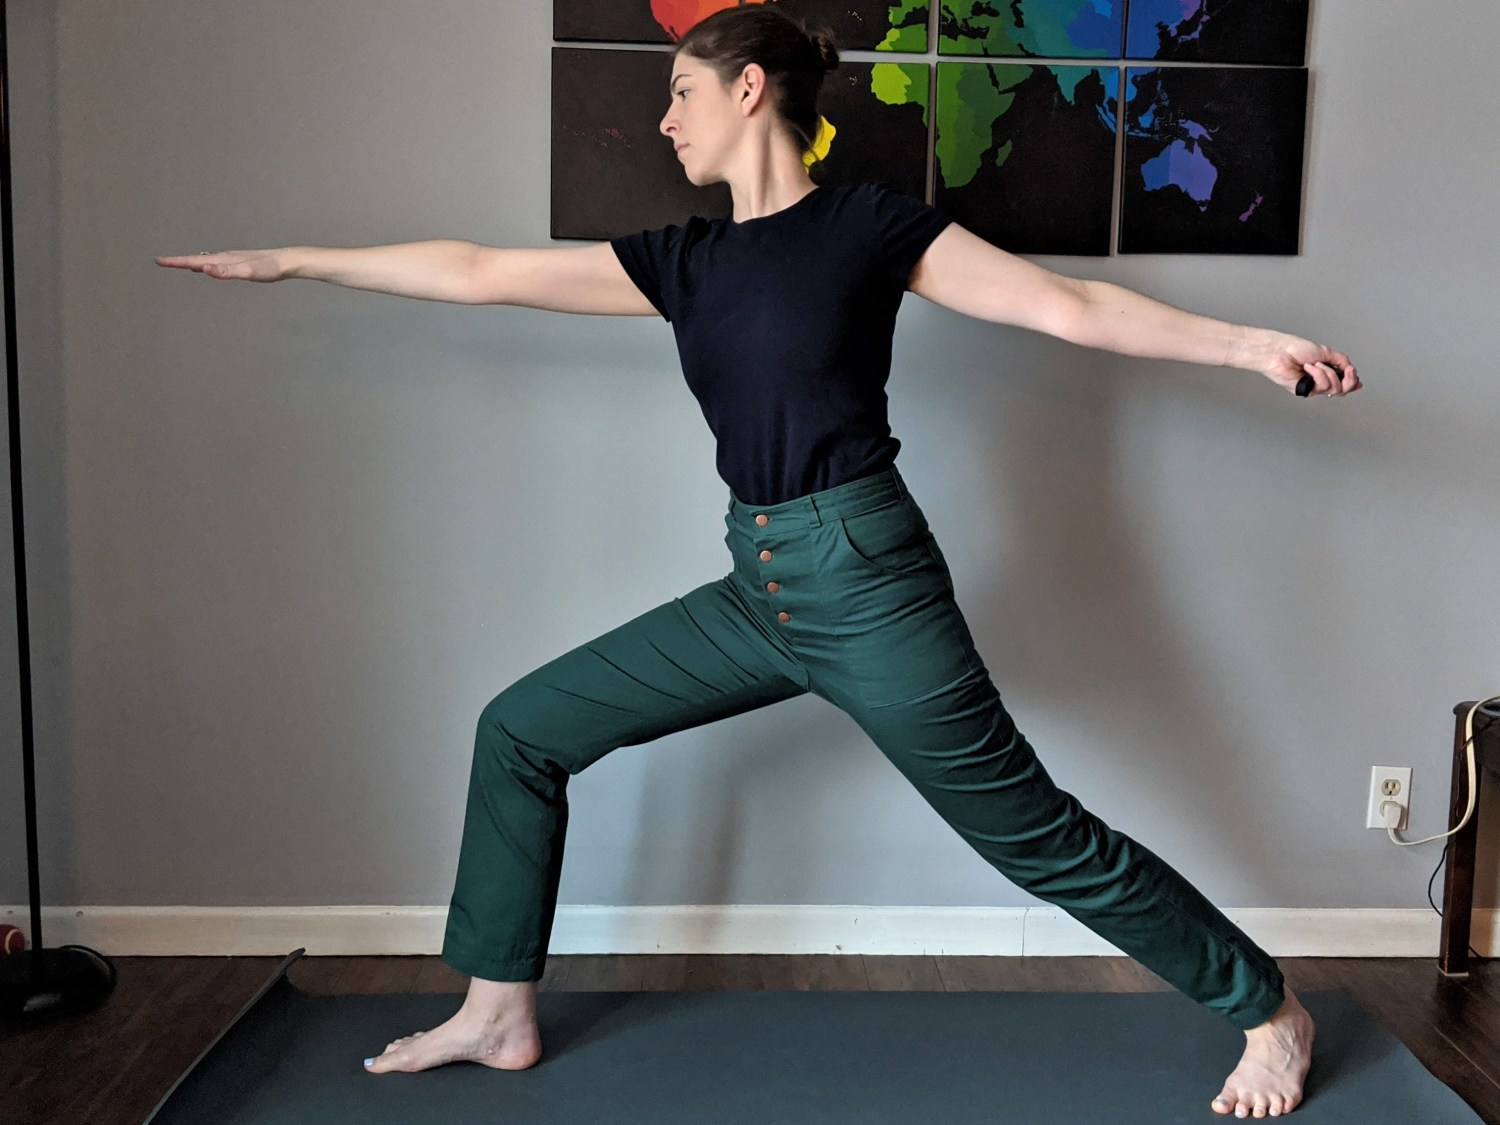 warrior 1 yoga pose in Lander pants